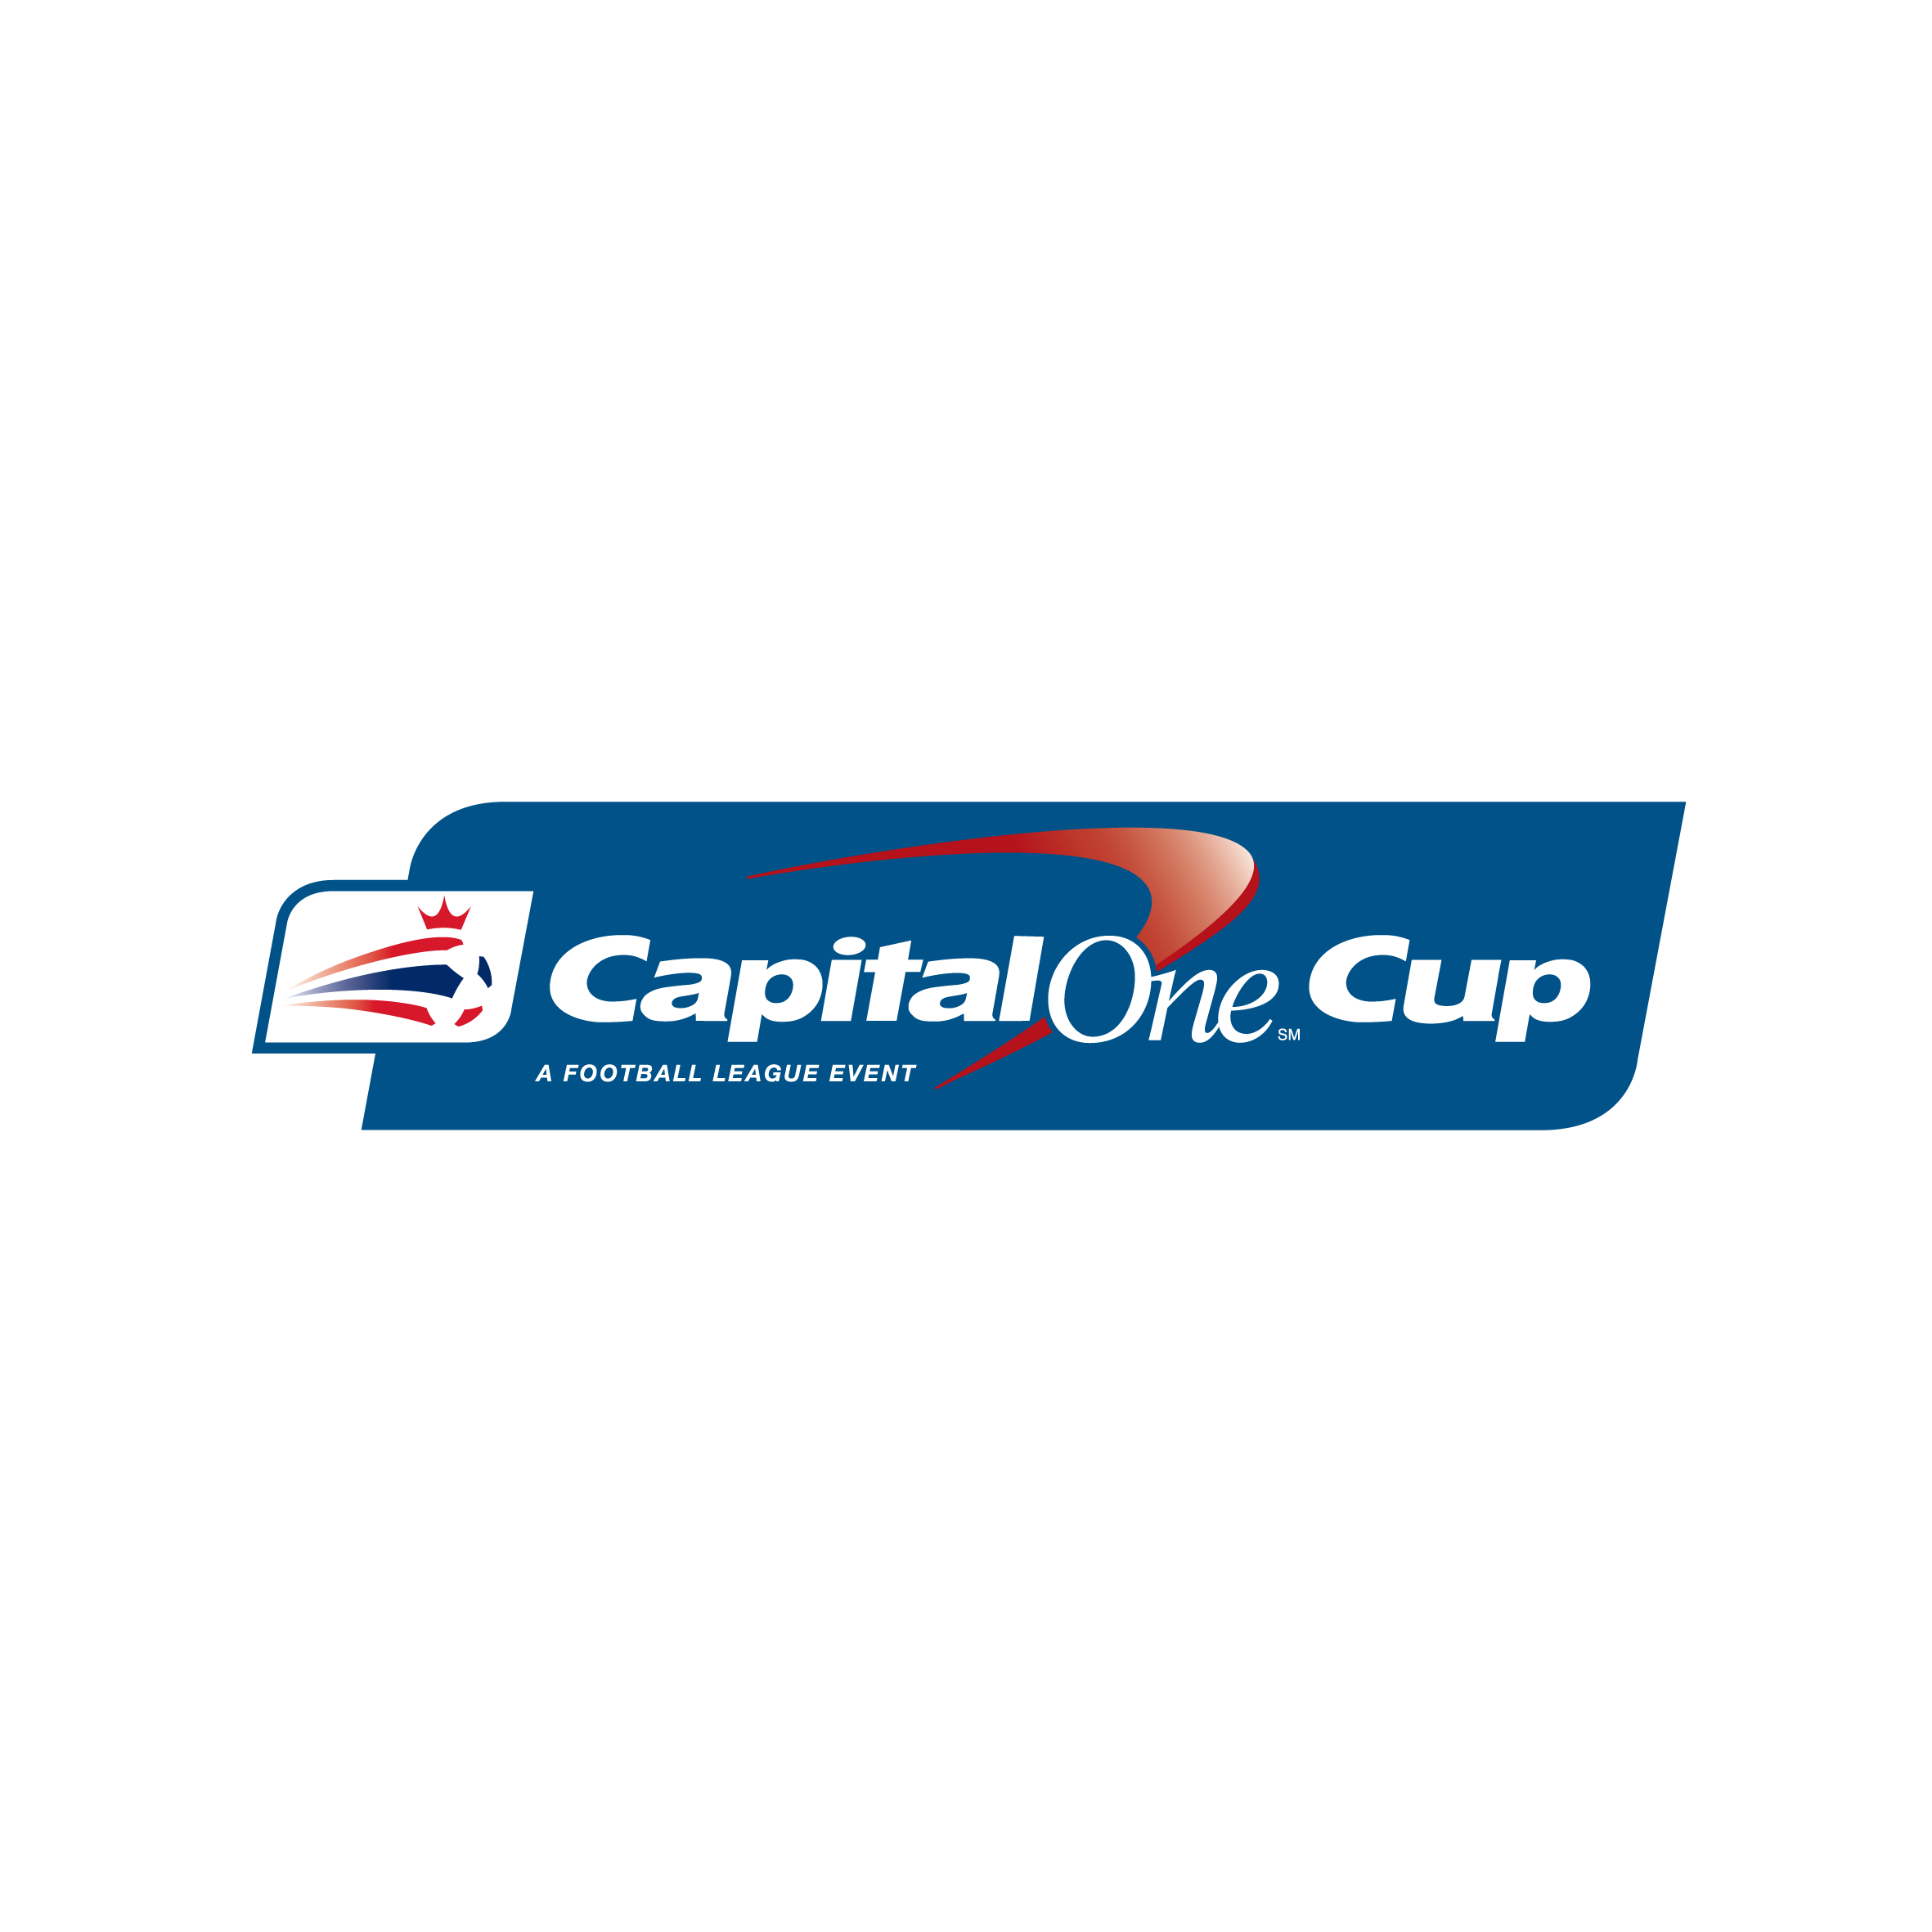 capital one cup 2017